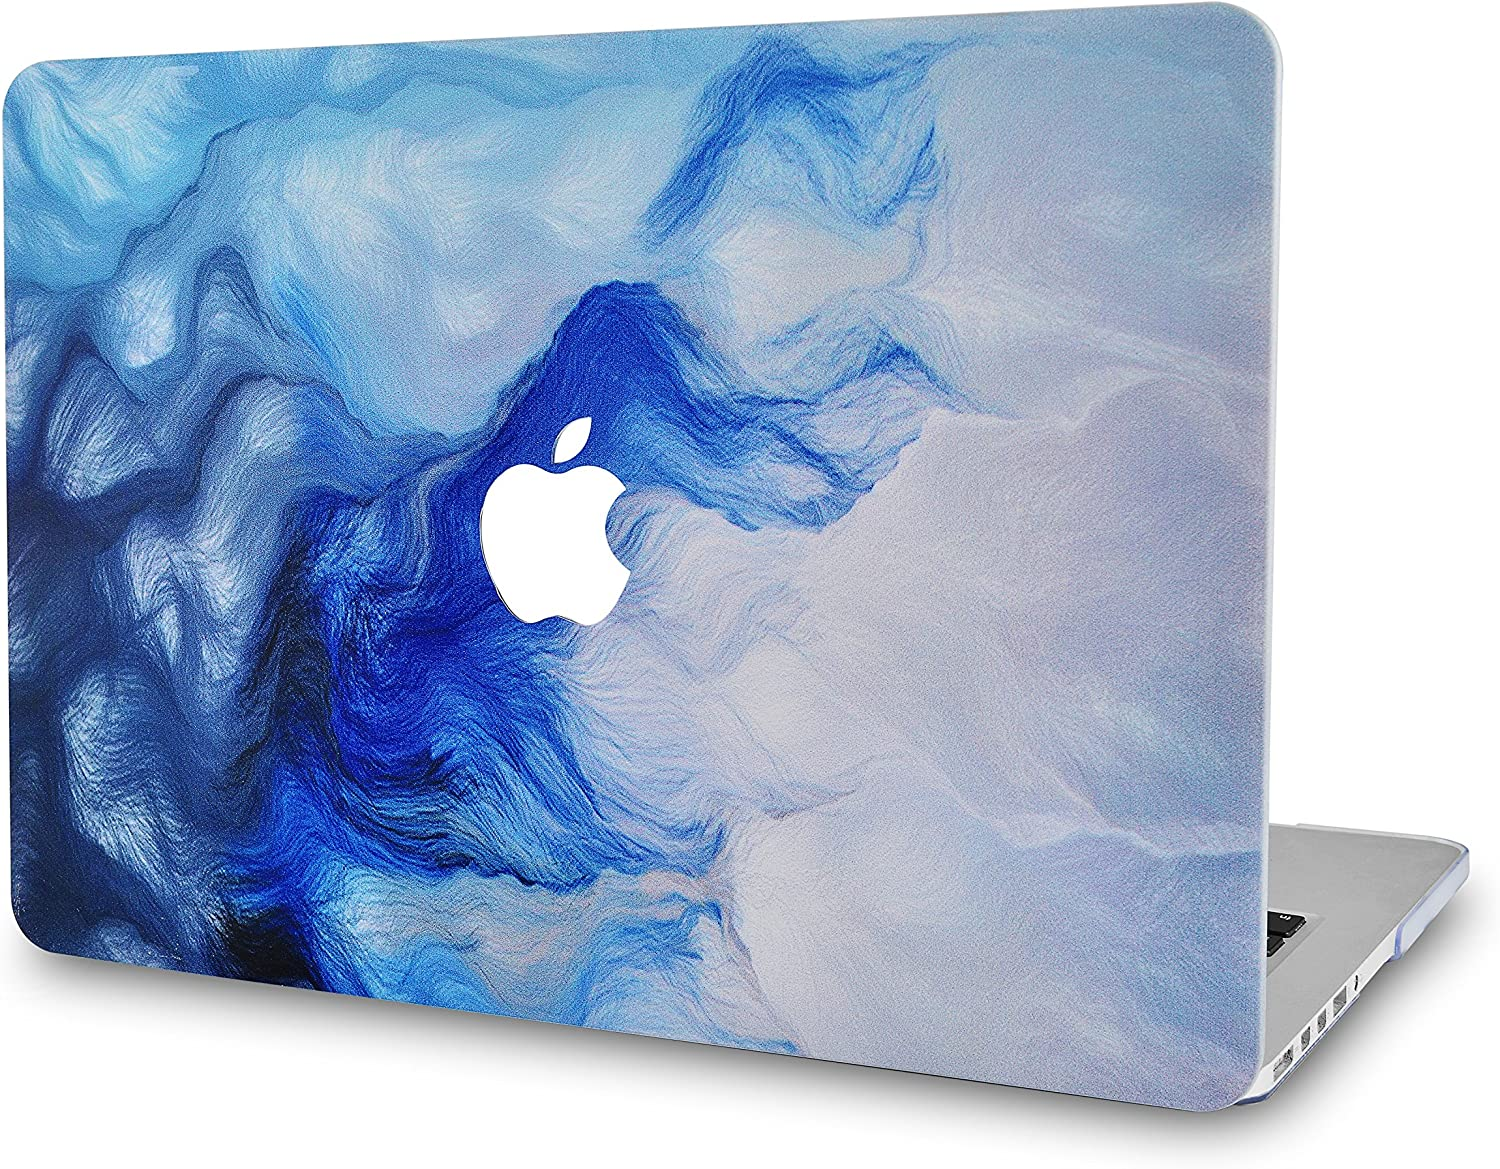 """LuvCaseLaptopCaseforMacBookPro 13"""" (2020/2019/2018/2017/2016) with/Without Touch Bar A2251/A2289/A2159/A1989/A1706/A1708 RubberizedPlasticHardShell Cover (Mist 12)"""